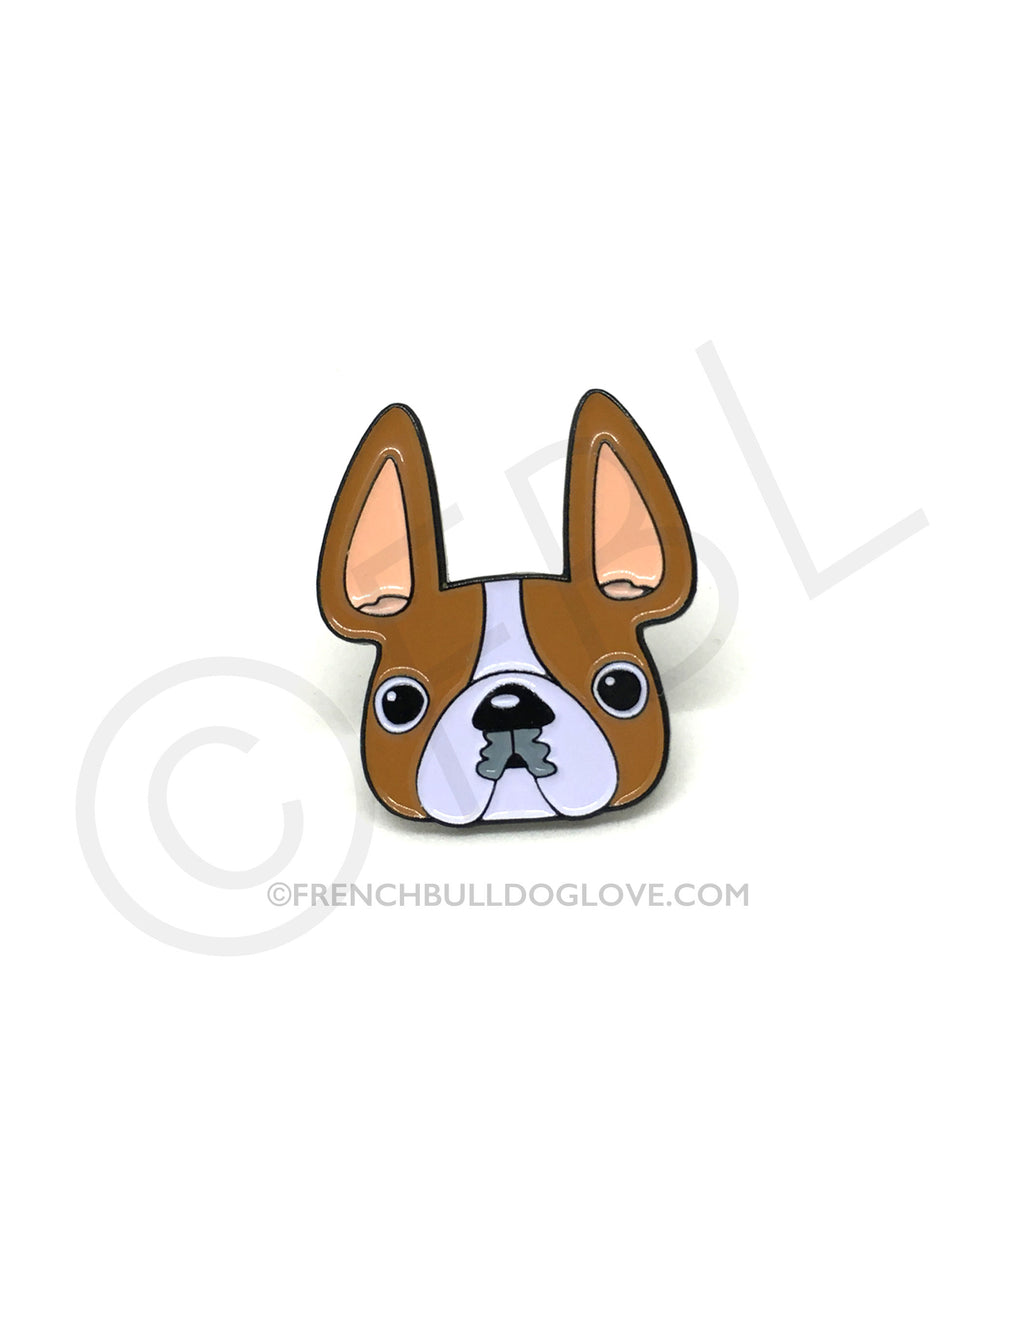 French Bulldog Enamel Pin - Red Pied